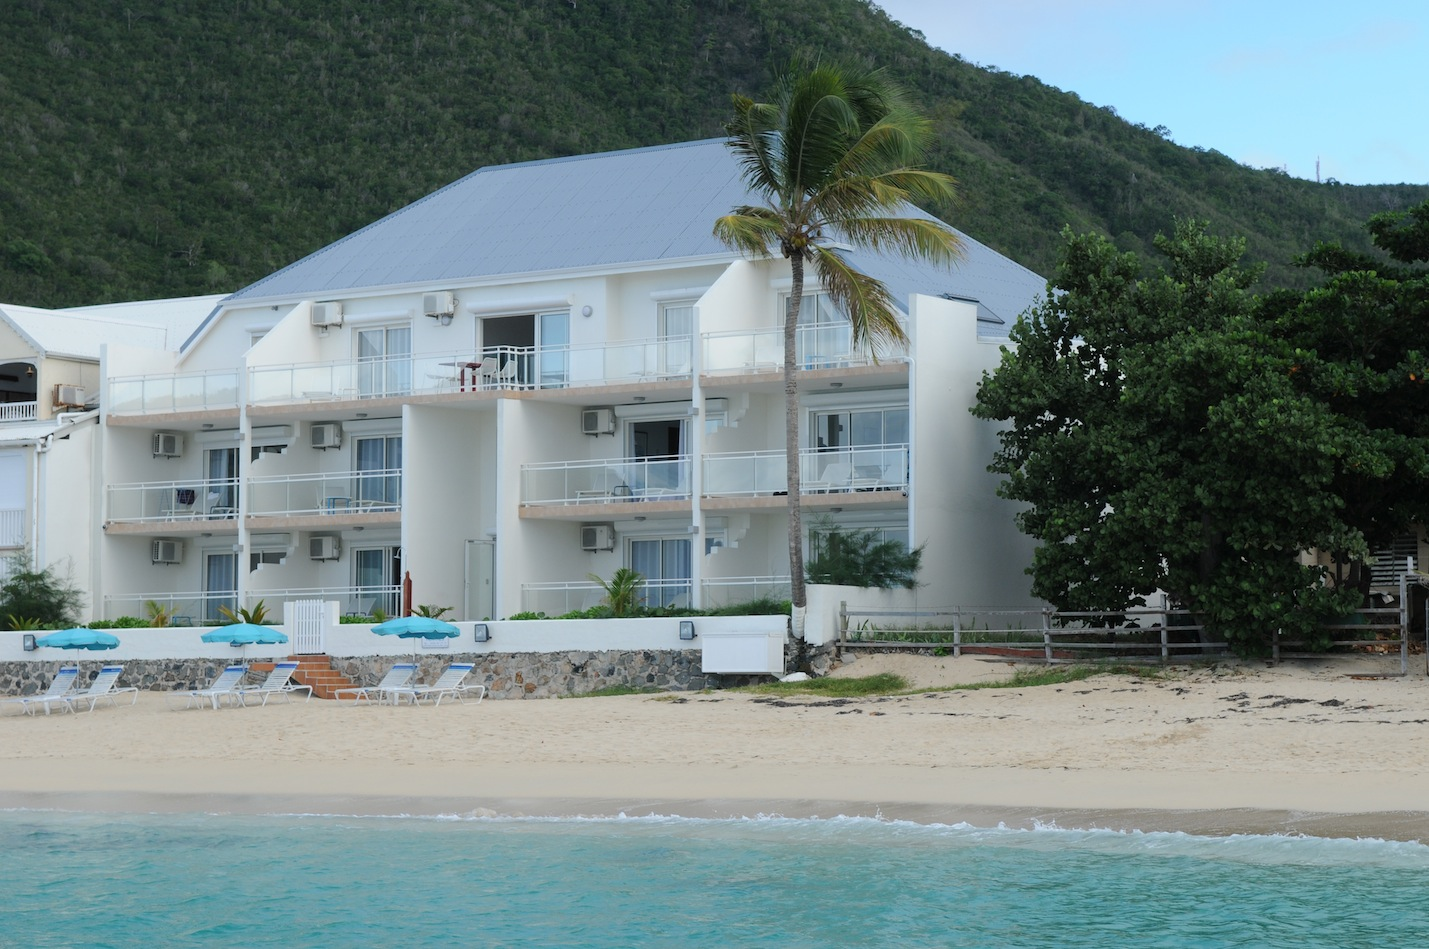 Beautiful Resort Hotel on the sea located on Grand Case St Martin